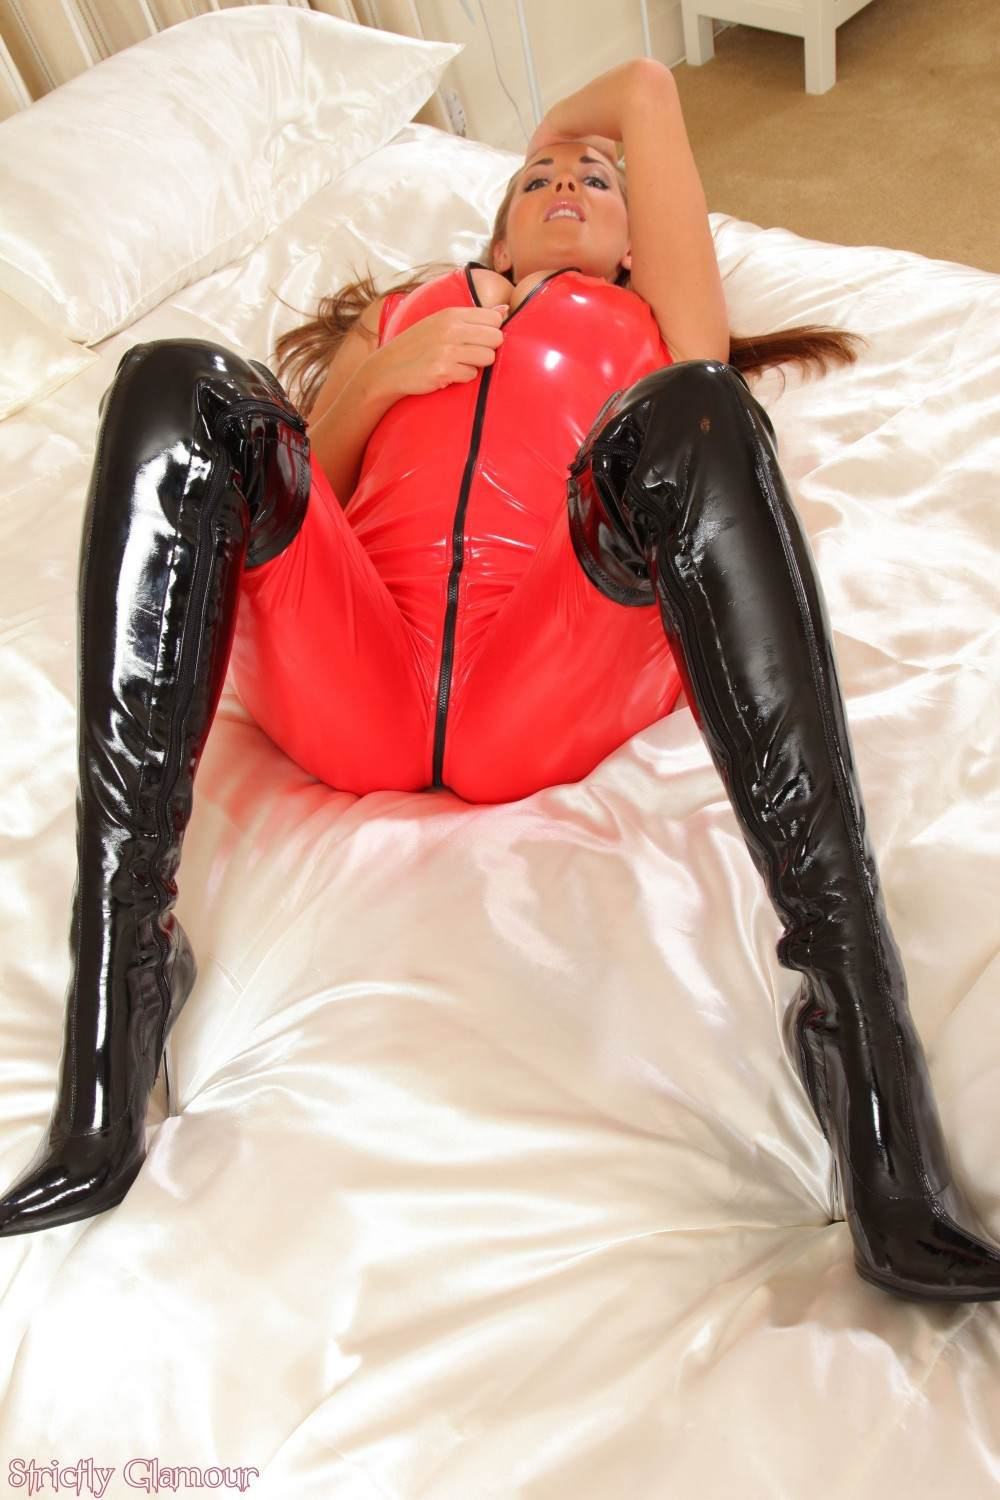 Picture #3 of How do you feel about getting whipped by a sexy blond in PVC catsuit and knee boots?